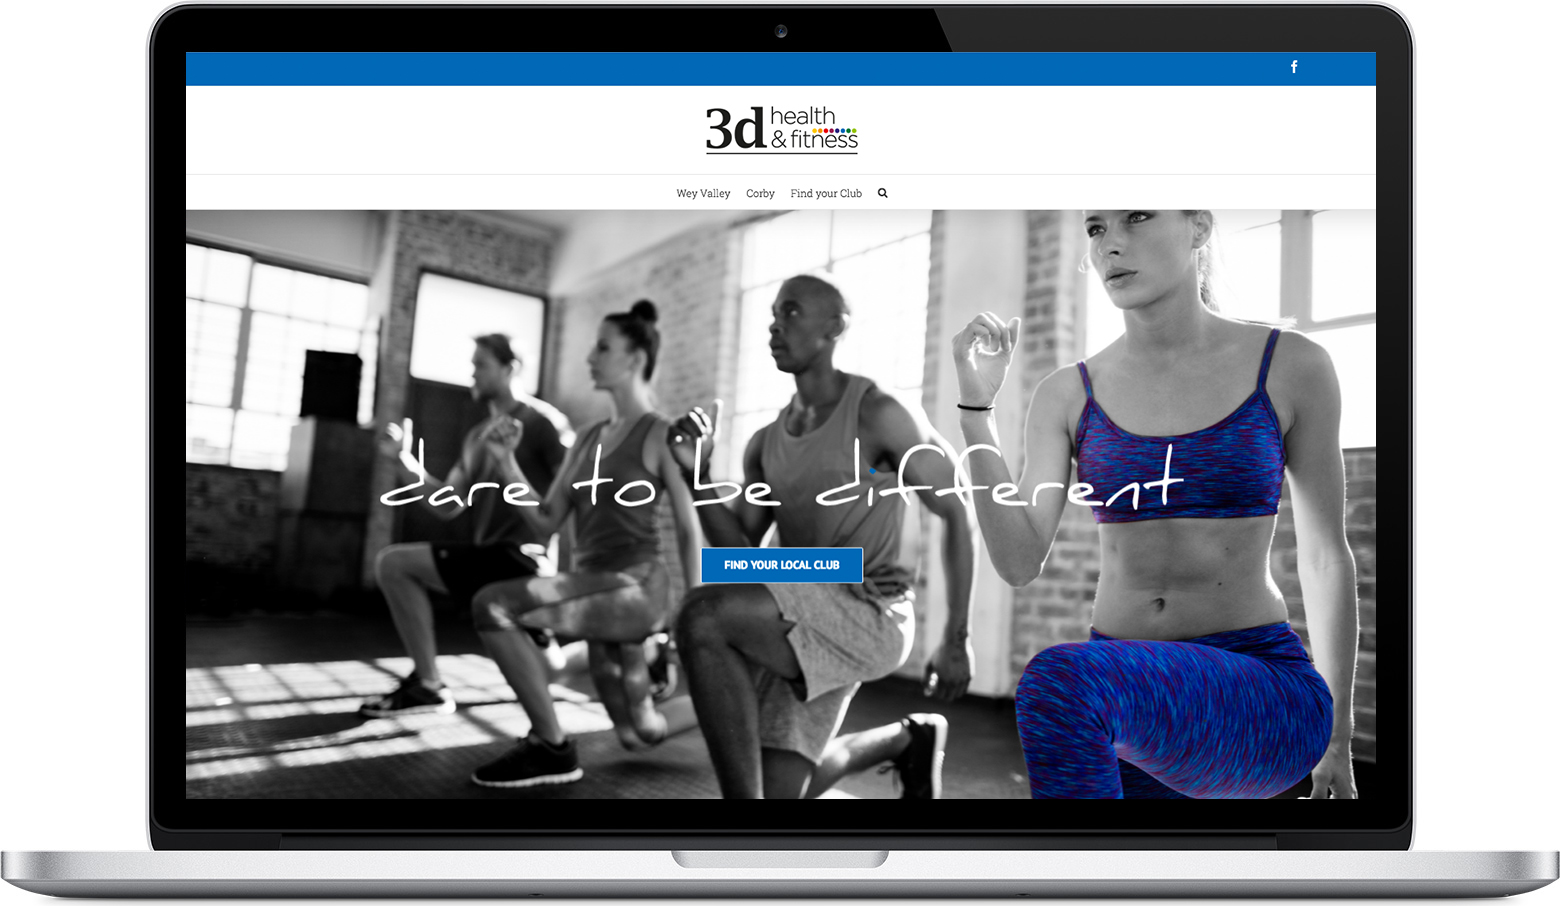 3dhealth & Fitness website